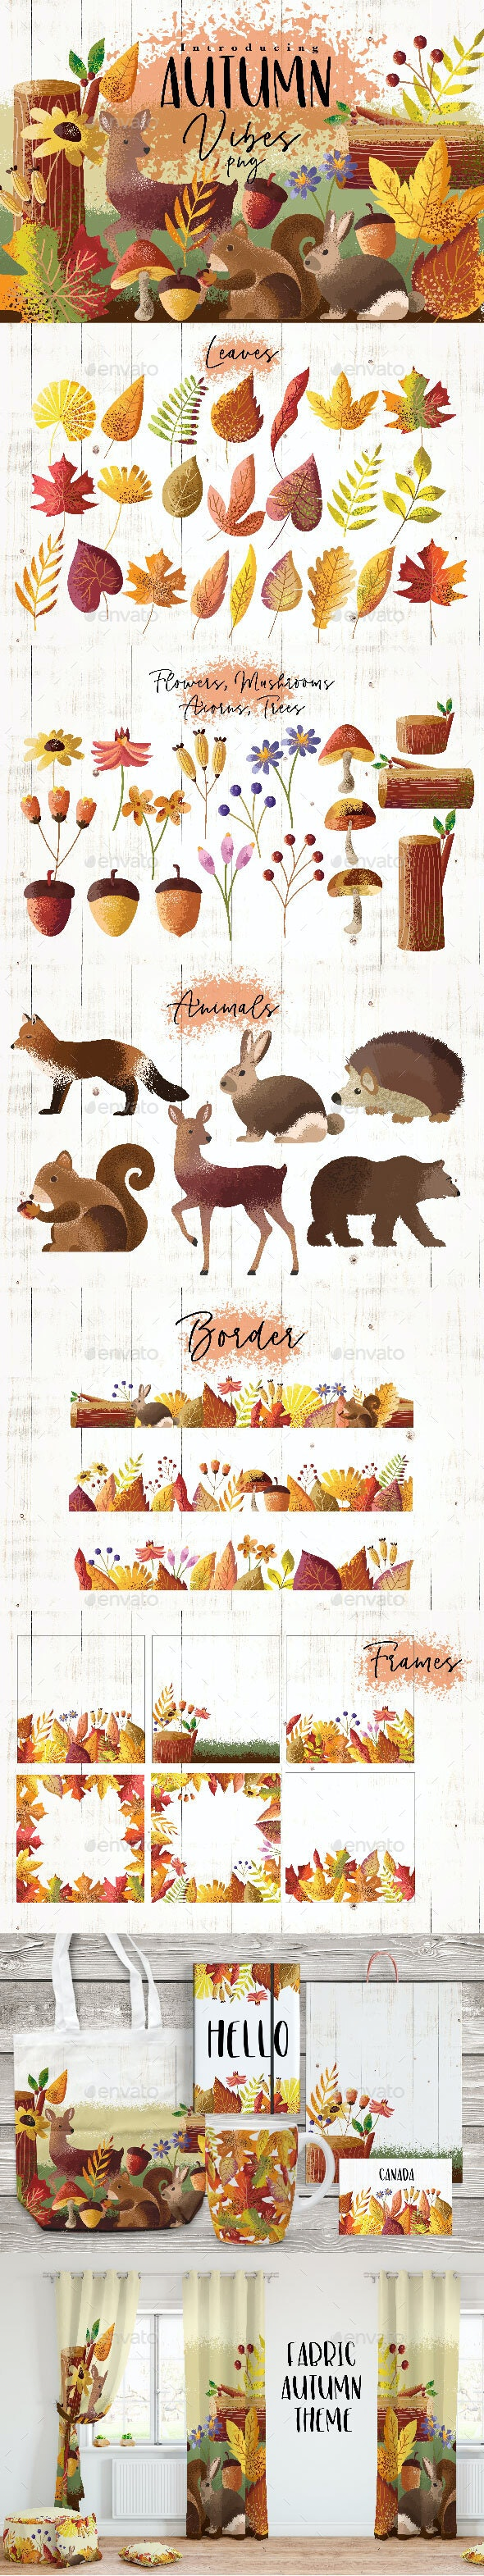 Autumn Vibes - Animals Illustrations